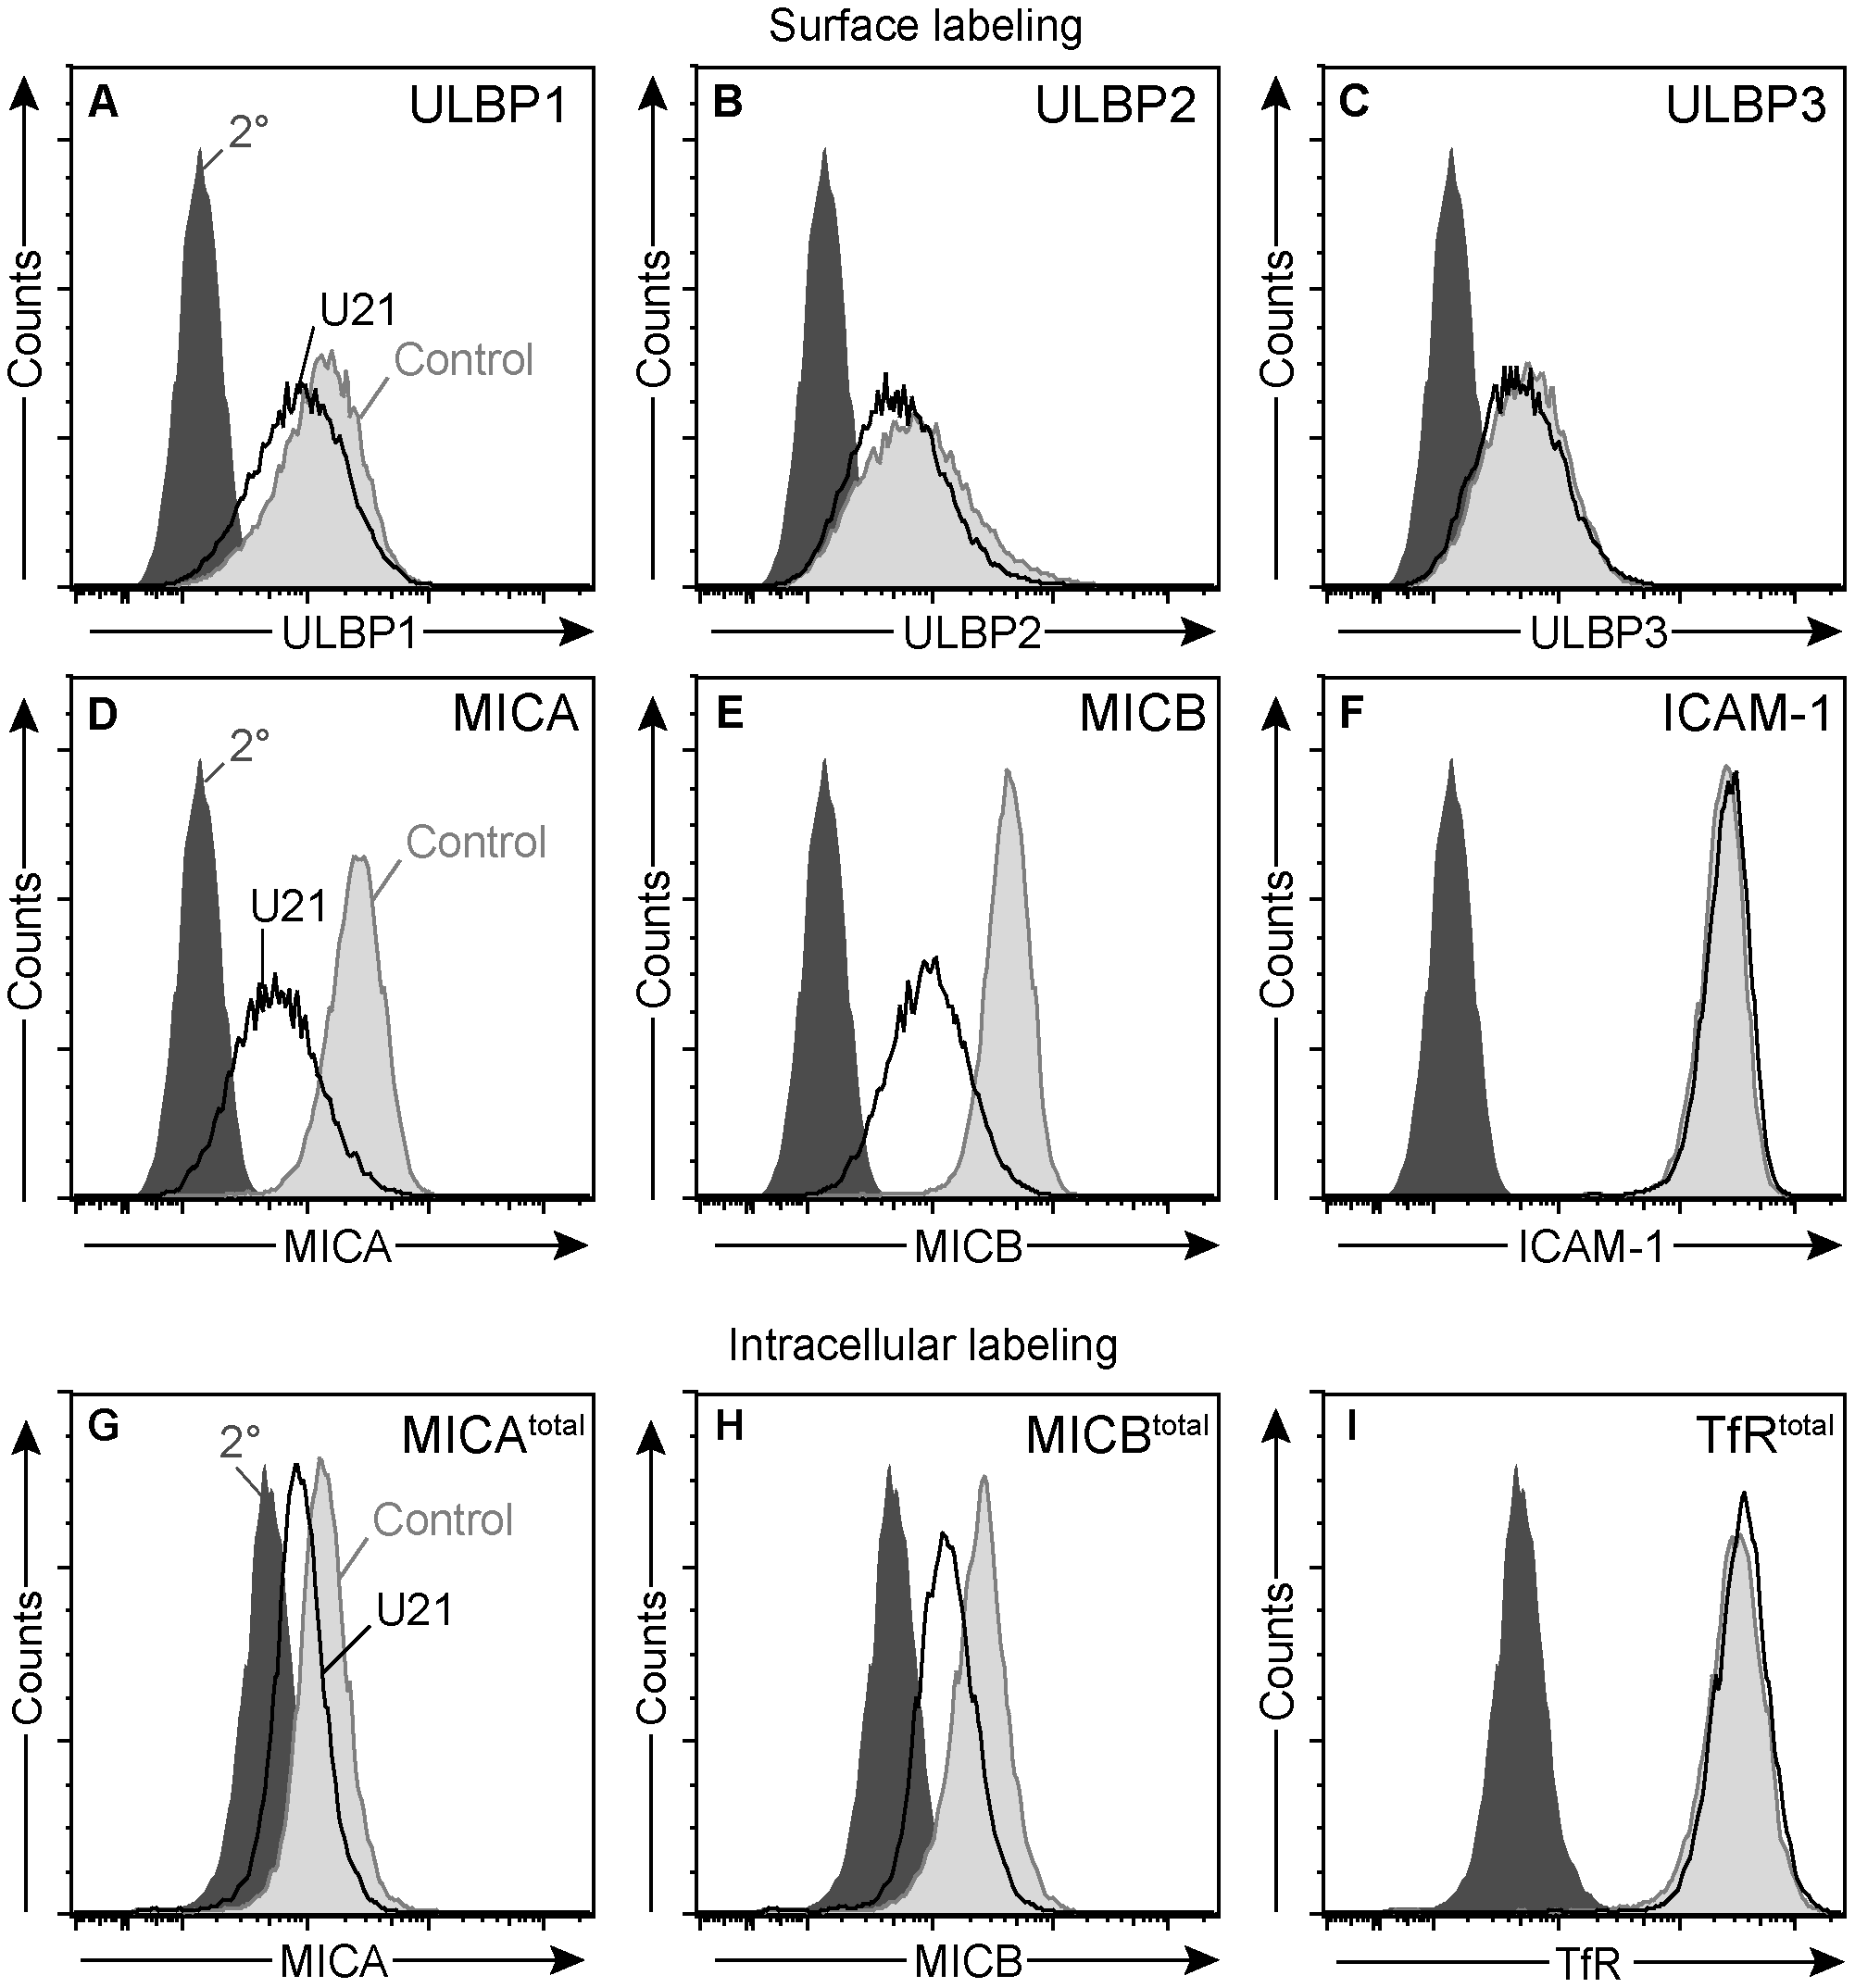 U21 down-regulates and destabilizes MICA and MICB in K562 cells.